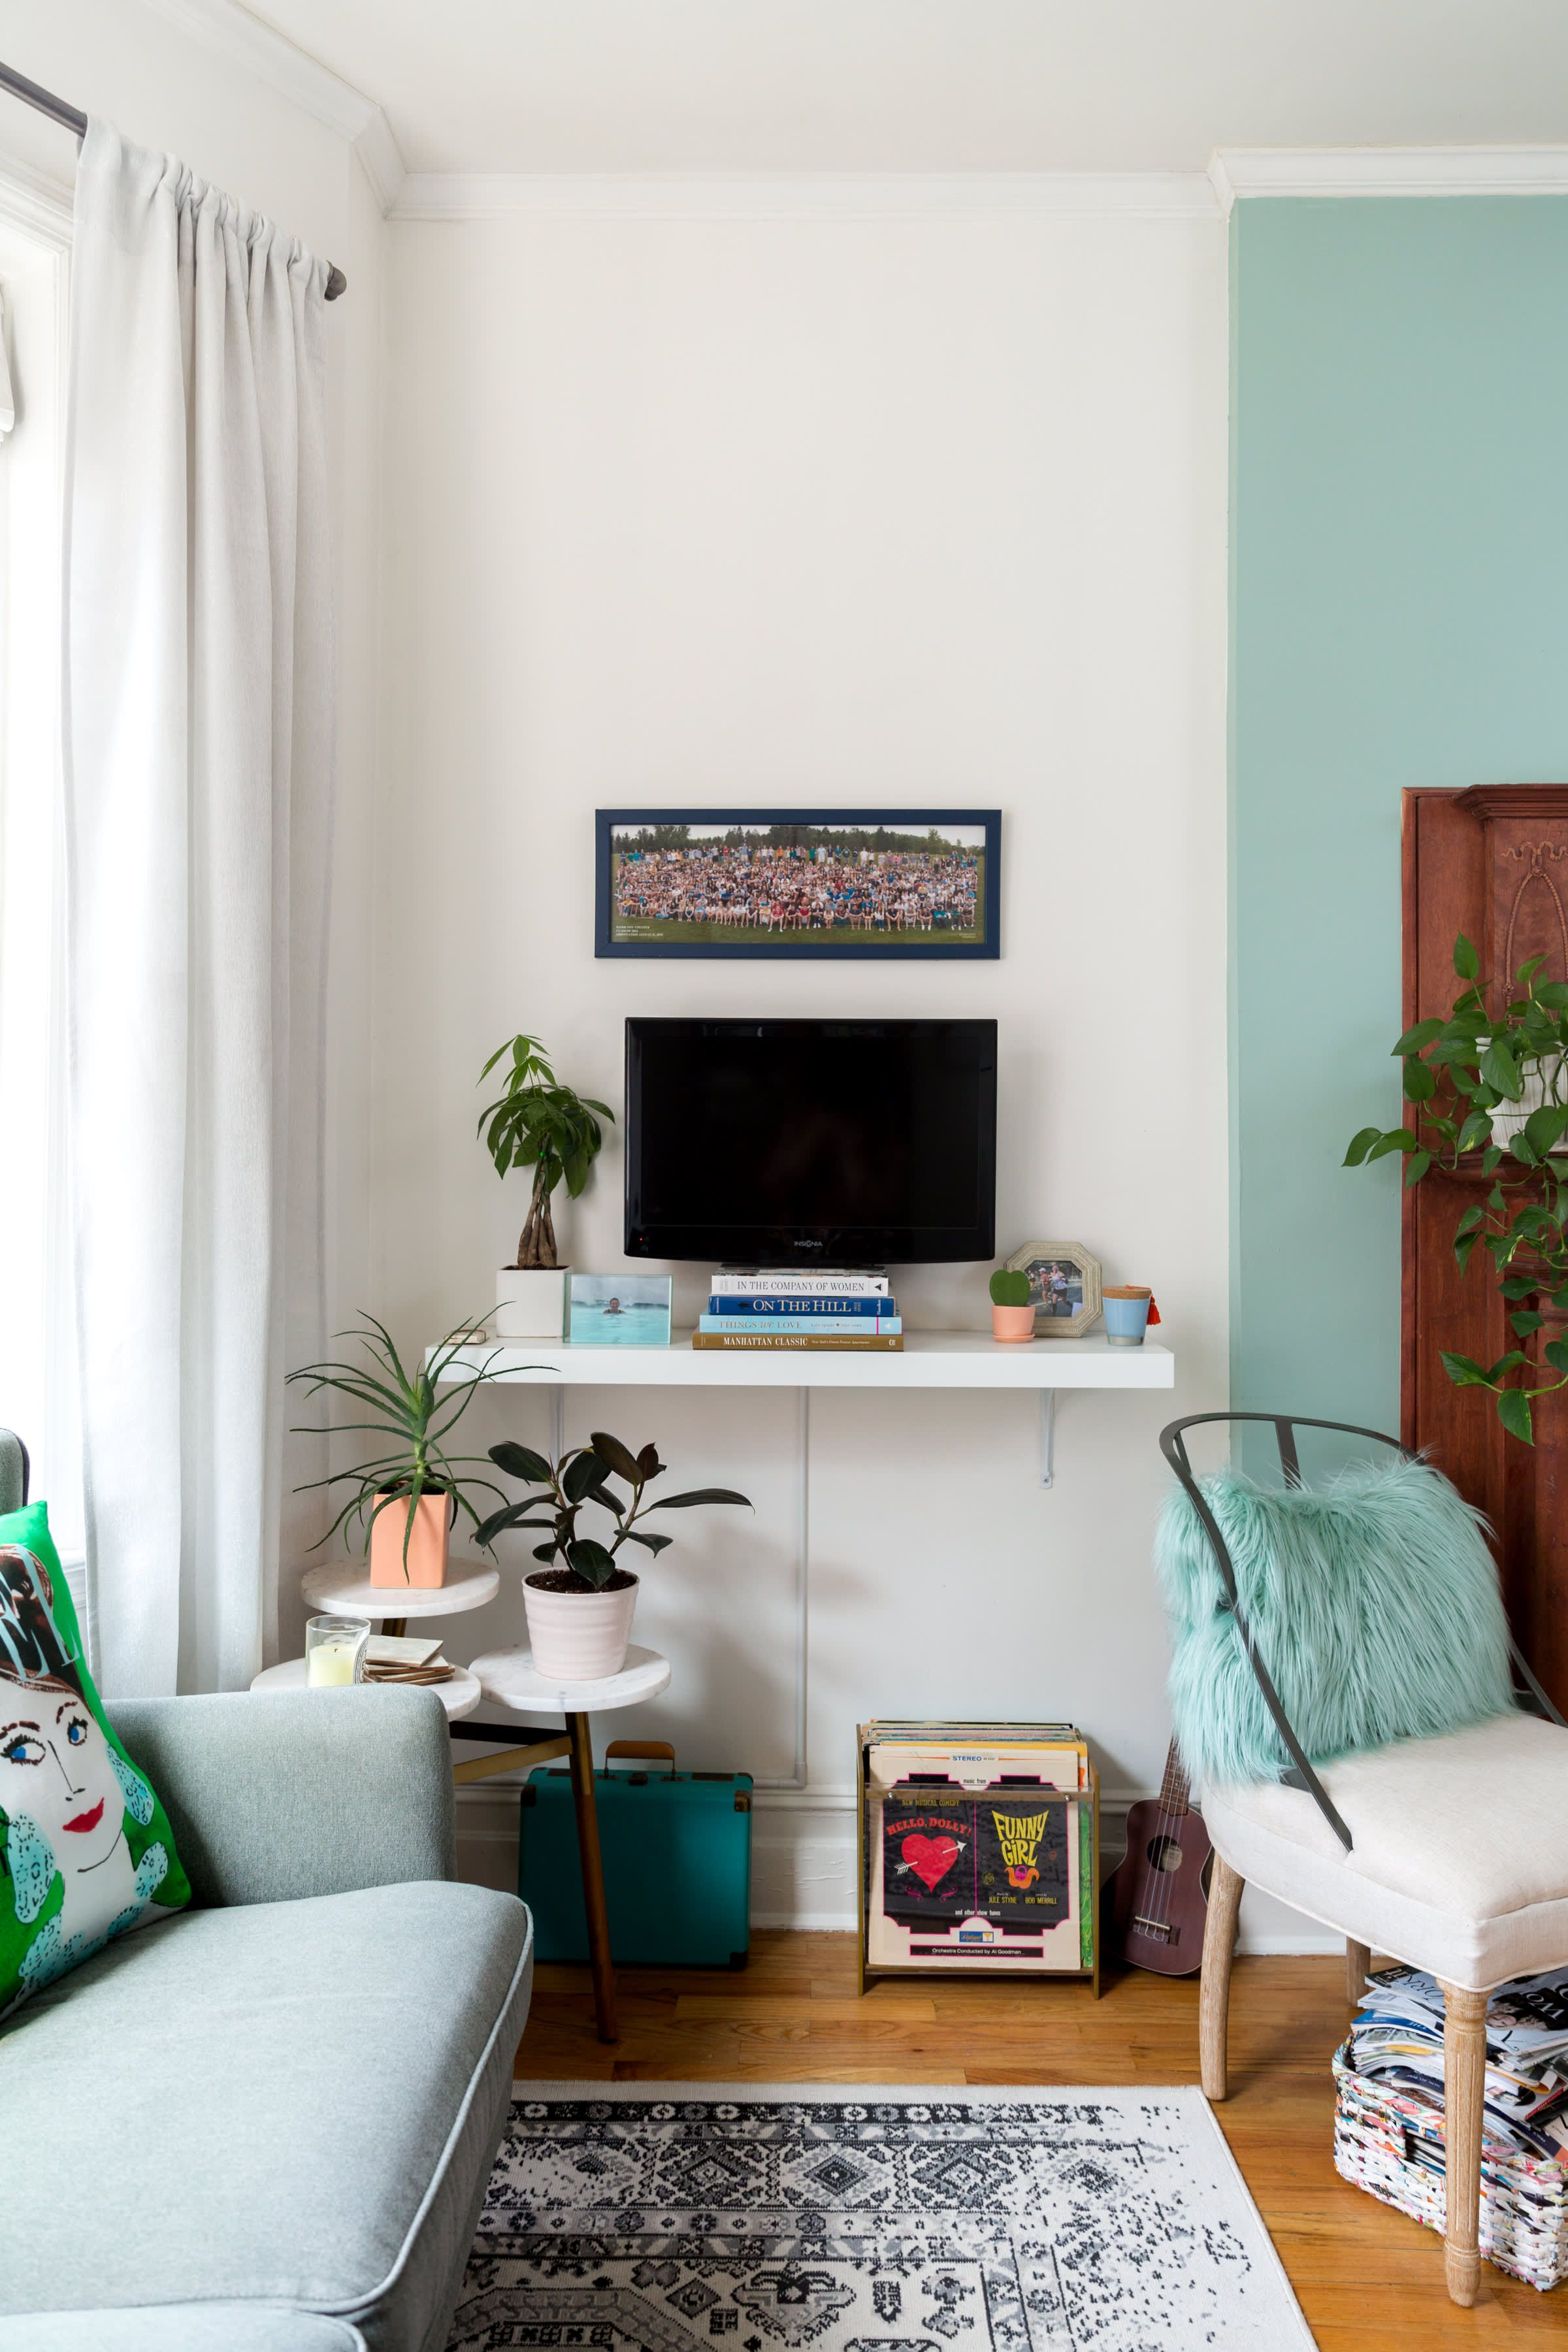 A Super Small 375 Square Foot Studio Is Masterfully Arranged Small Apartment Living Room Furniture Small Apartment Living Room Living Room Furniture Arrangement